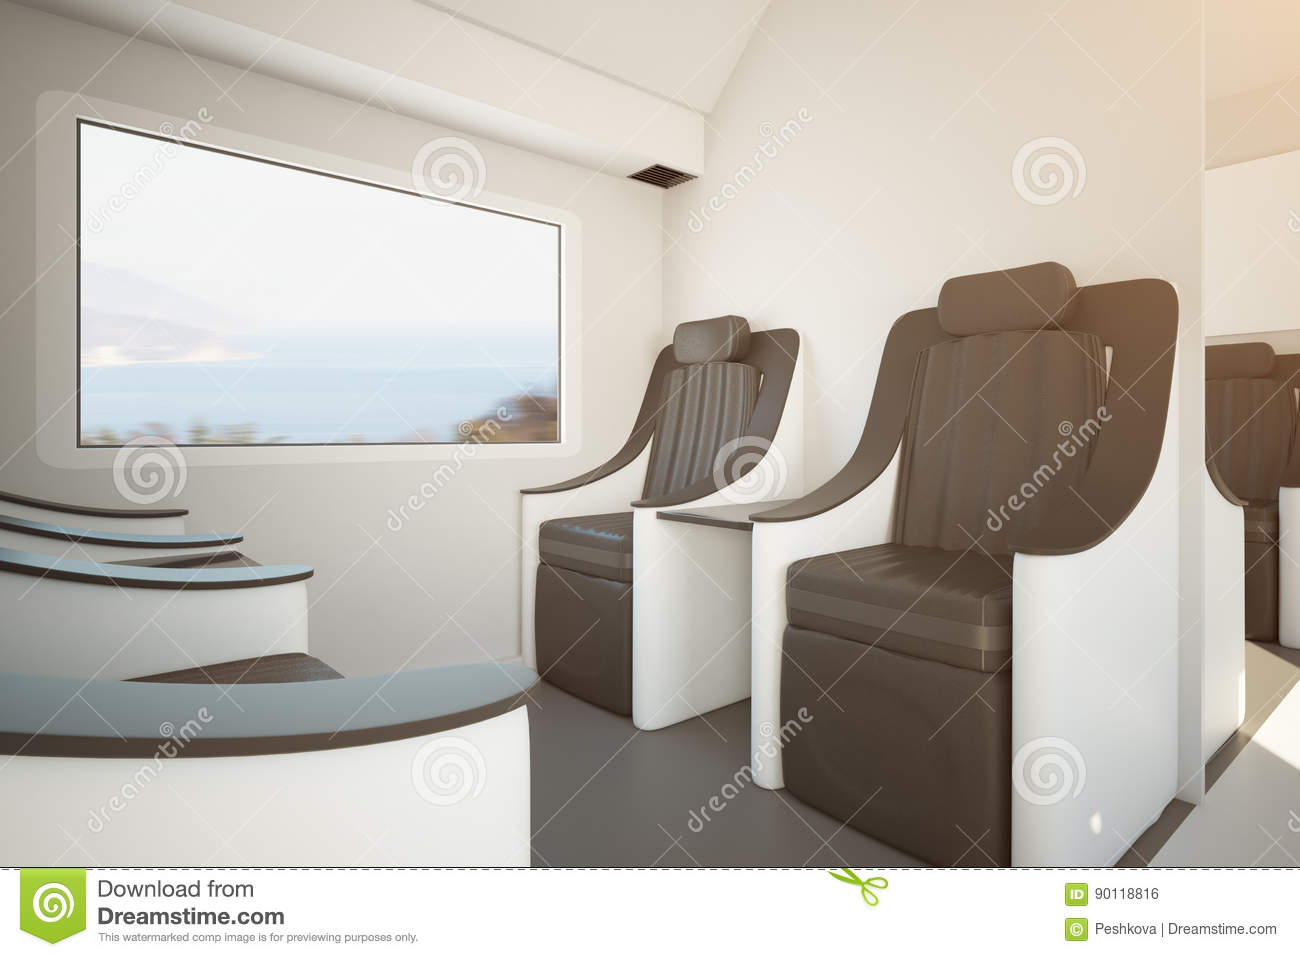 Contemporary train seats stock illustration image of for Window side seating